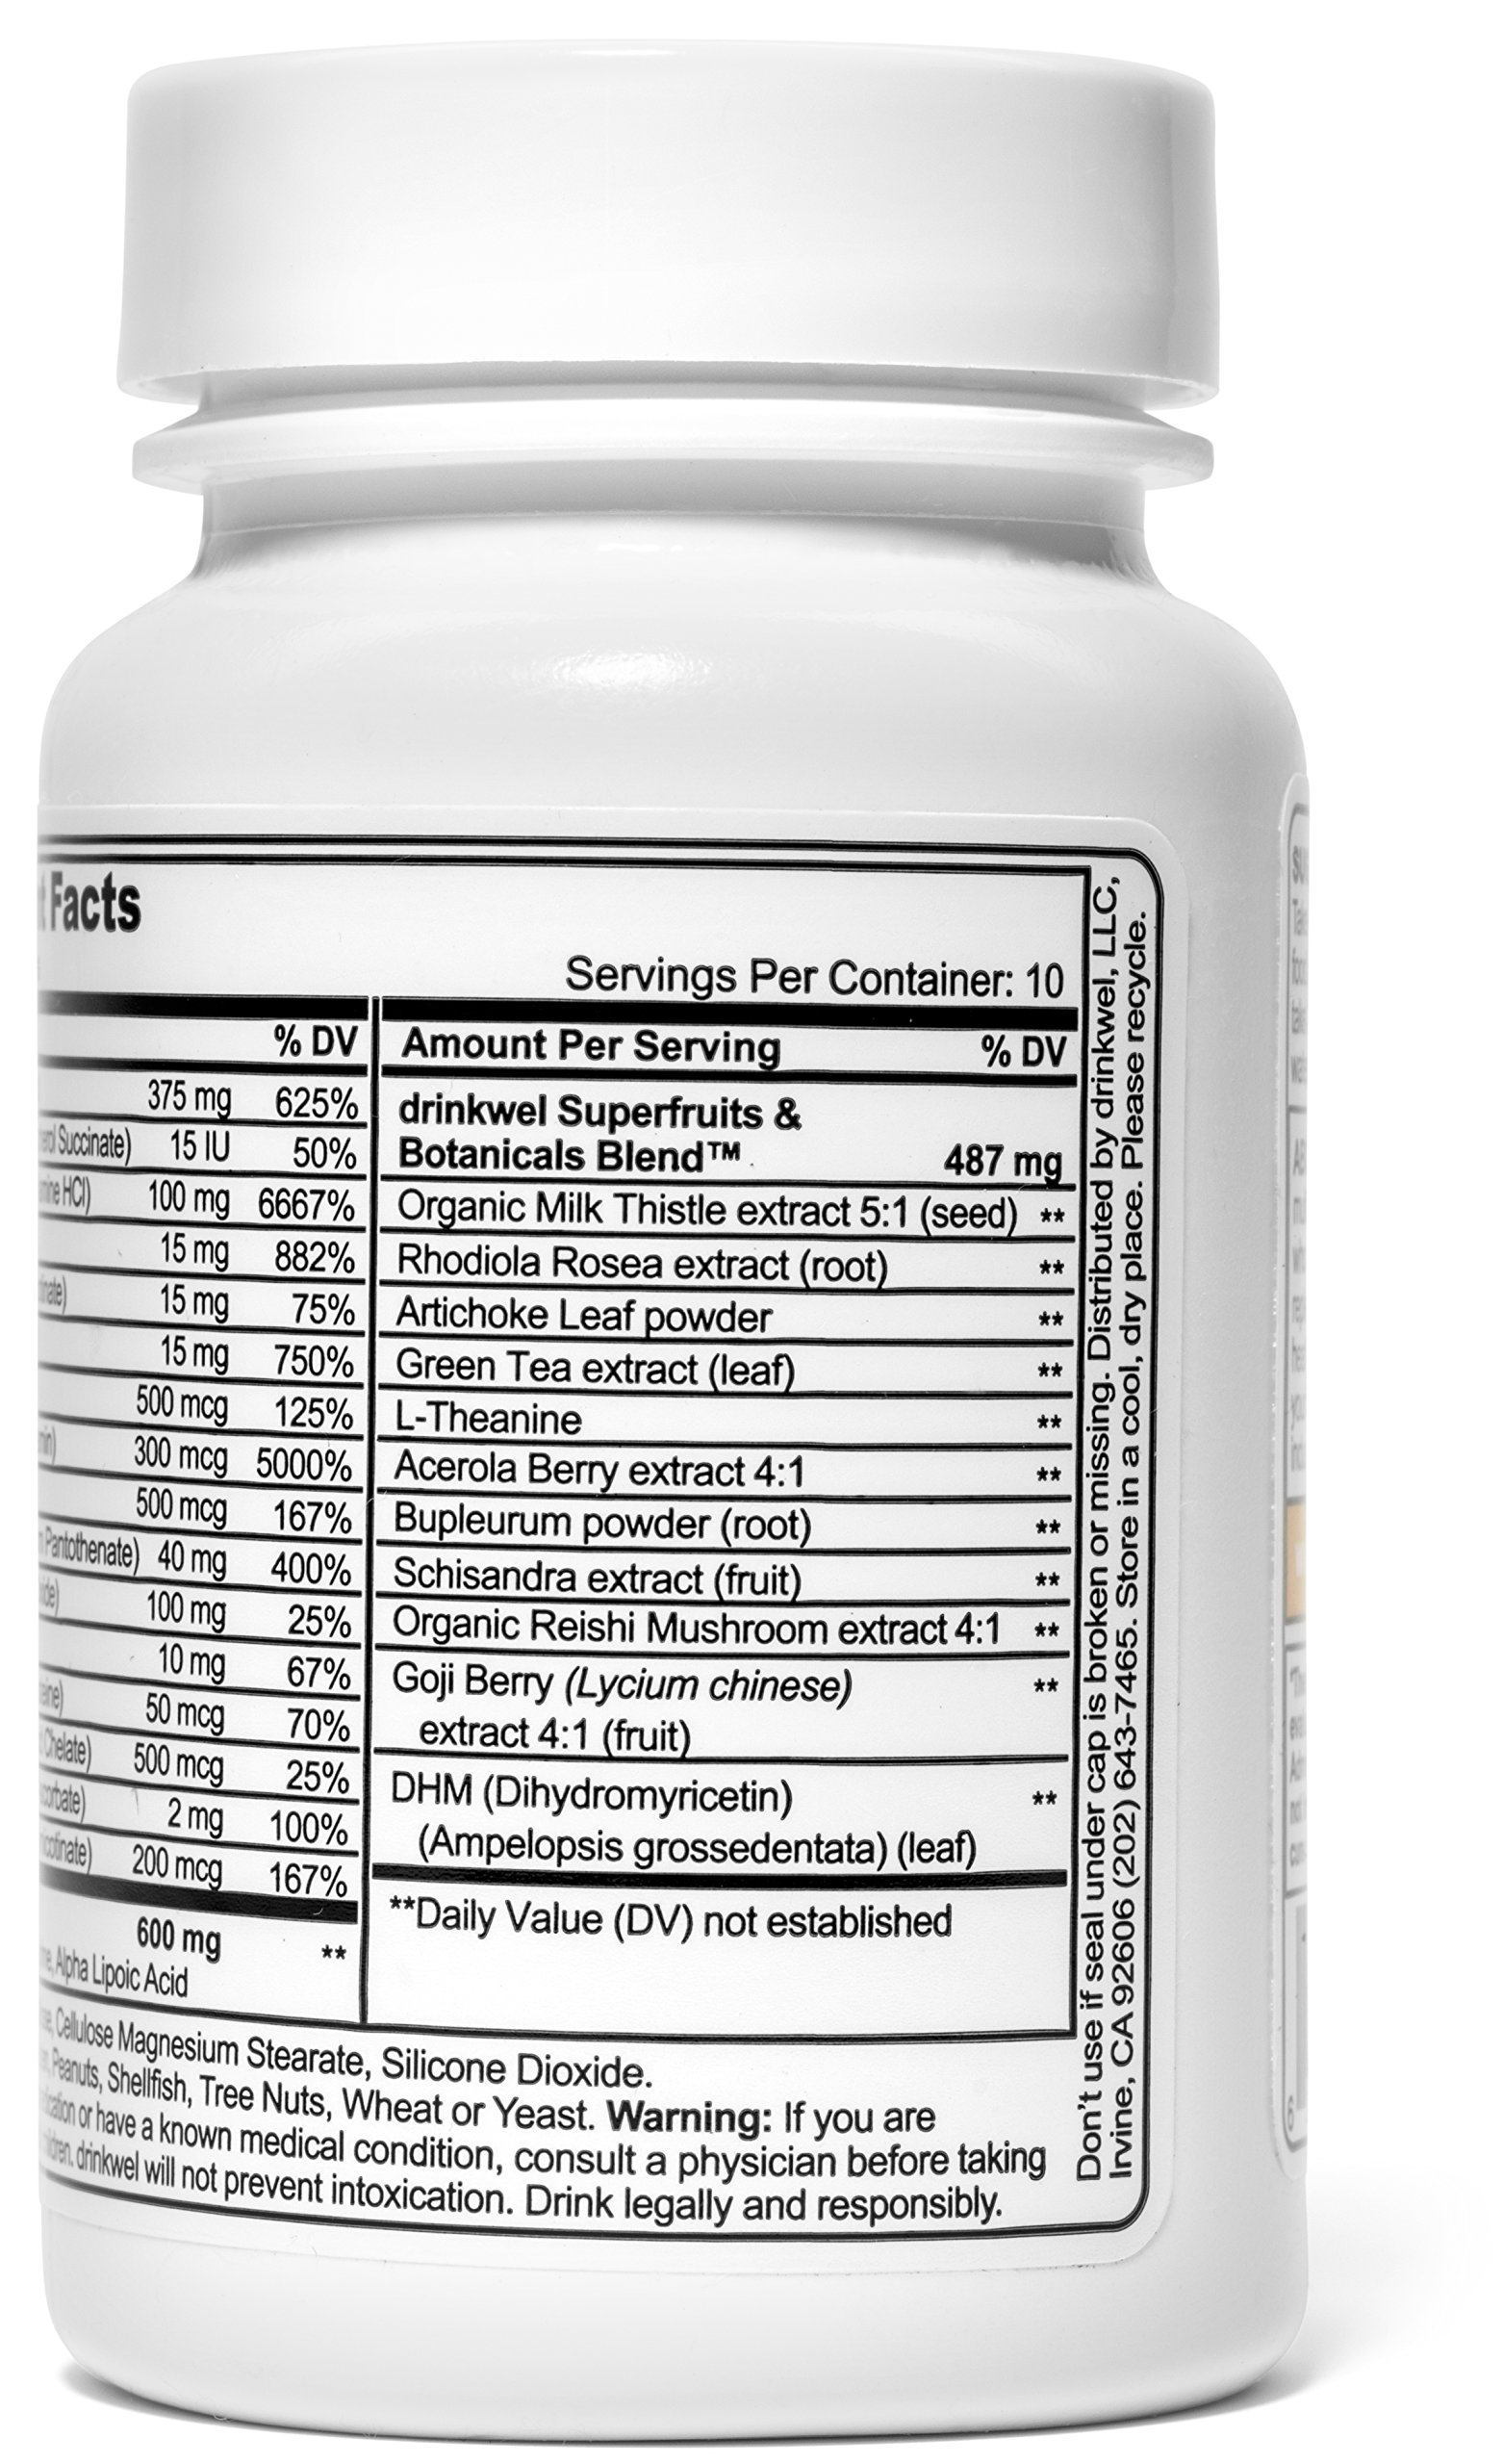 Drinkwel for Hangovers, Nutrient Replenishment & Liver Support (30 Vegetarian Capsules with Organic Milk Thistle, N-acetyl Cysteine, Alpha Lipoic Acid, and DHM) (Travel Size Bottle) by drinkwel (Image #4)